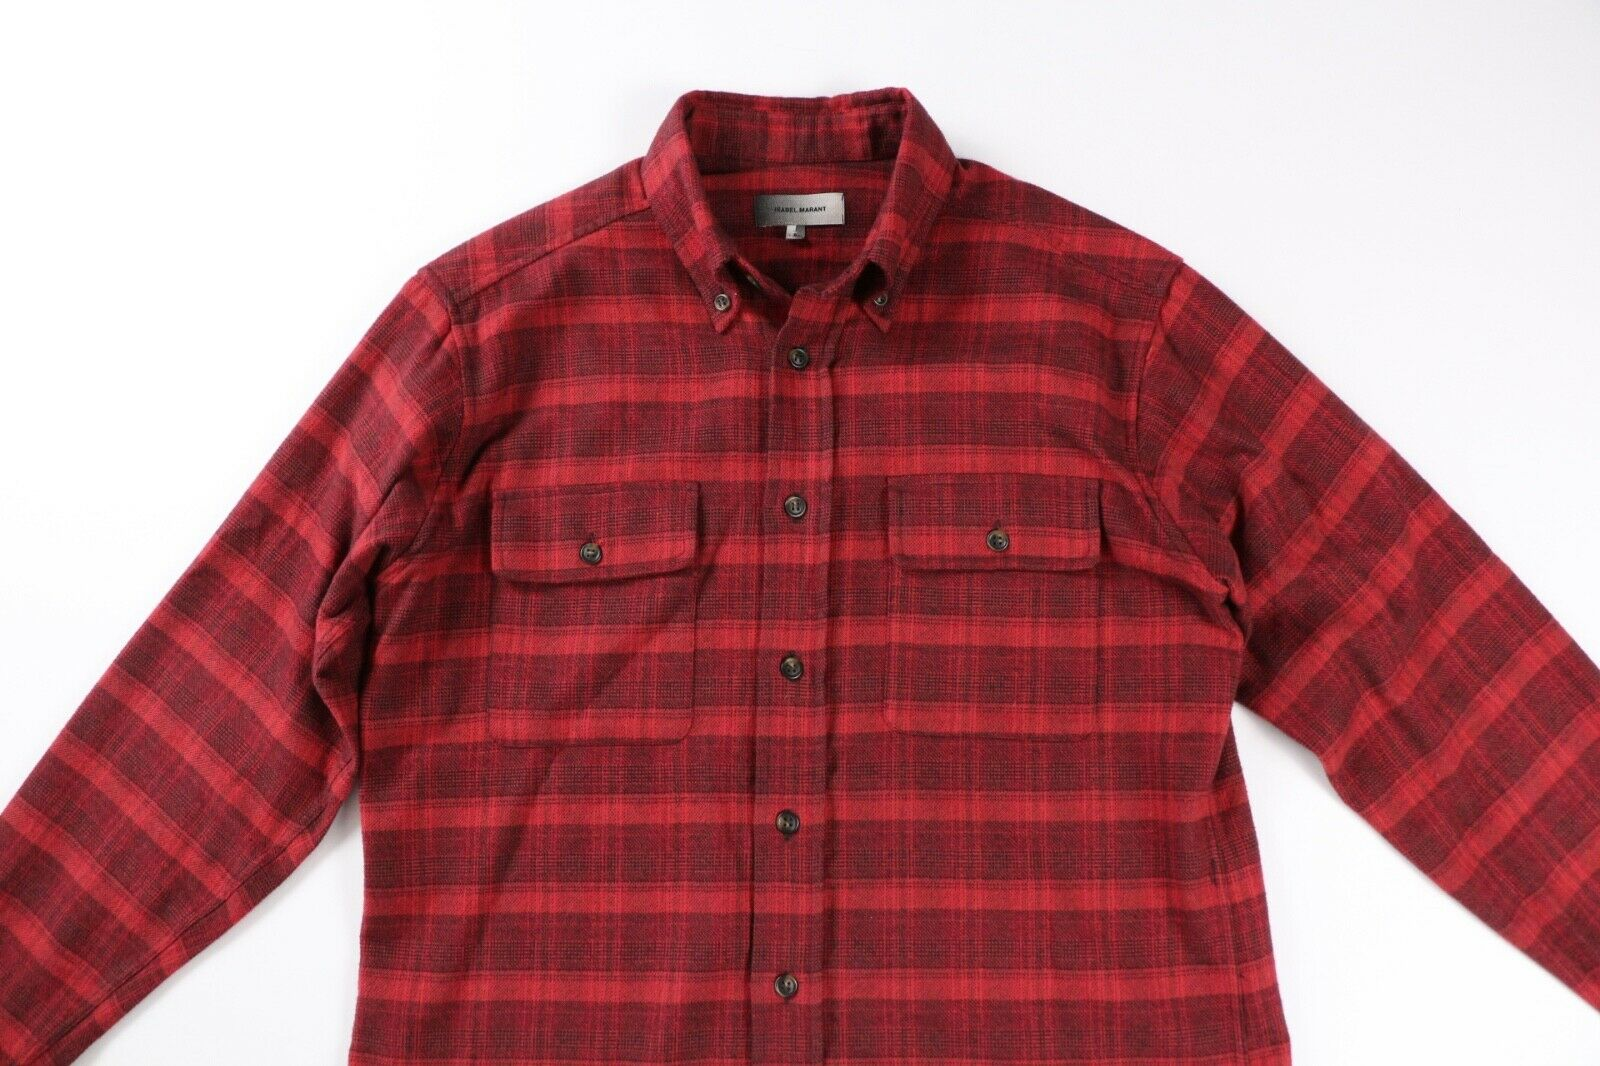 Isabel Marant Mens Red Plaid Oversized Cotton Flannel Shirt S Small